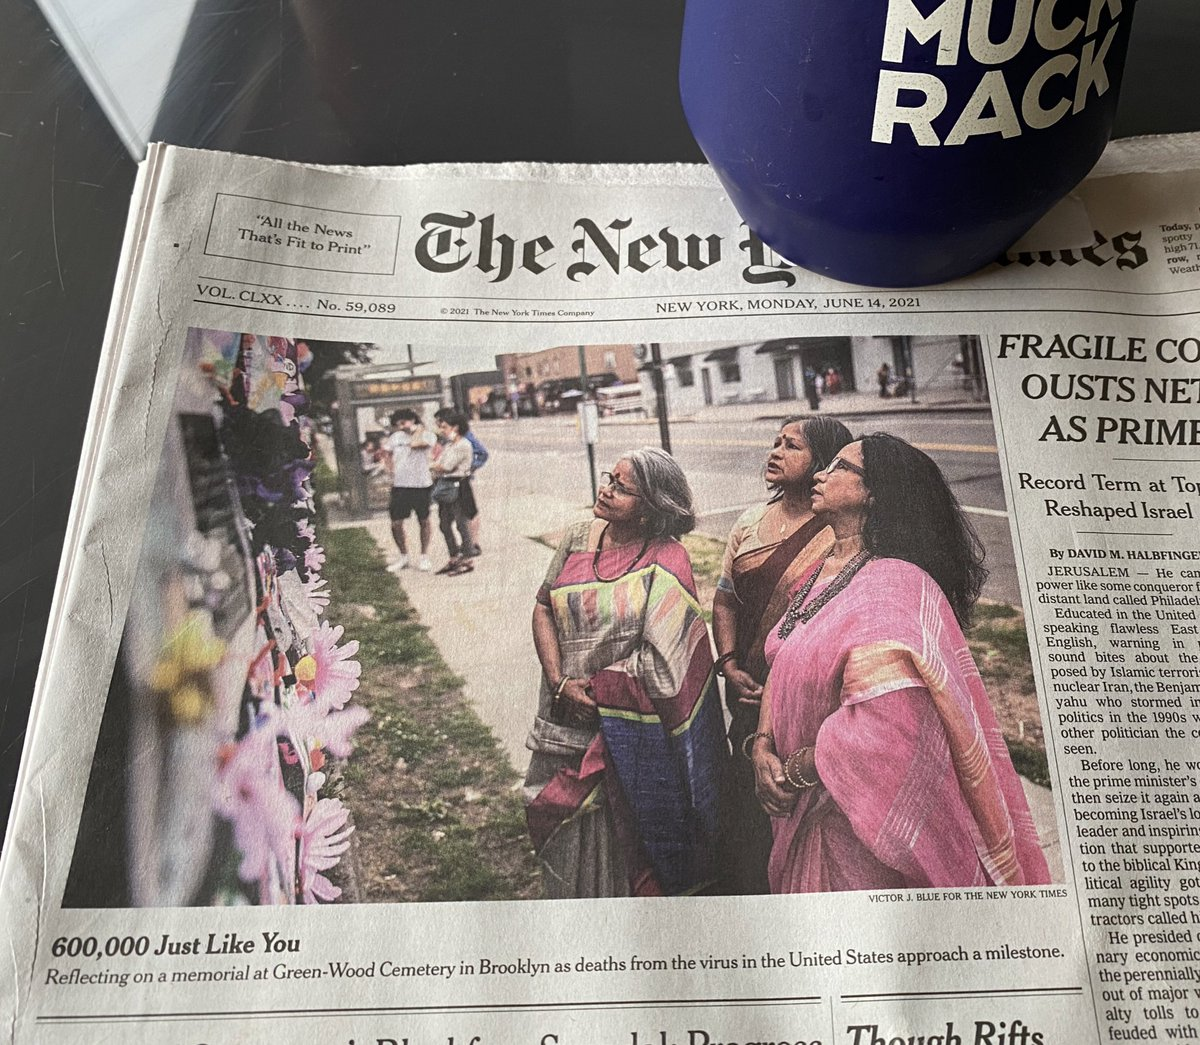 """I thought this was yet another photo from India's Covid crisis.   This is a photo taken in Brooklyn by Victor J. Blue.  """"600,000 just like you."""" Has no accompanying story. Doesn't need one. https://t.co/gLMMds7iic"""